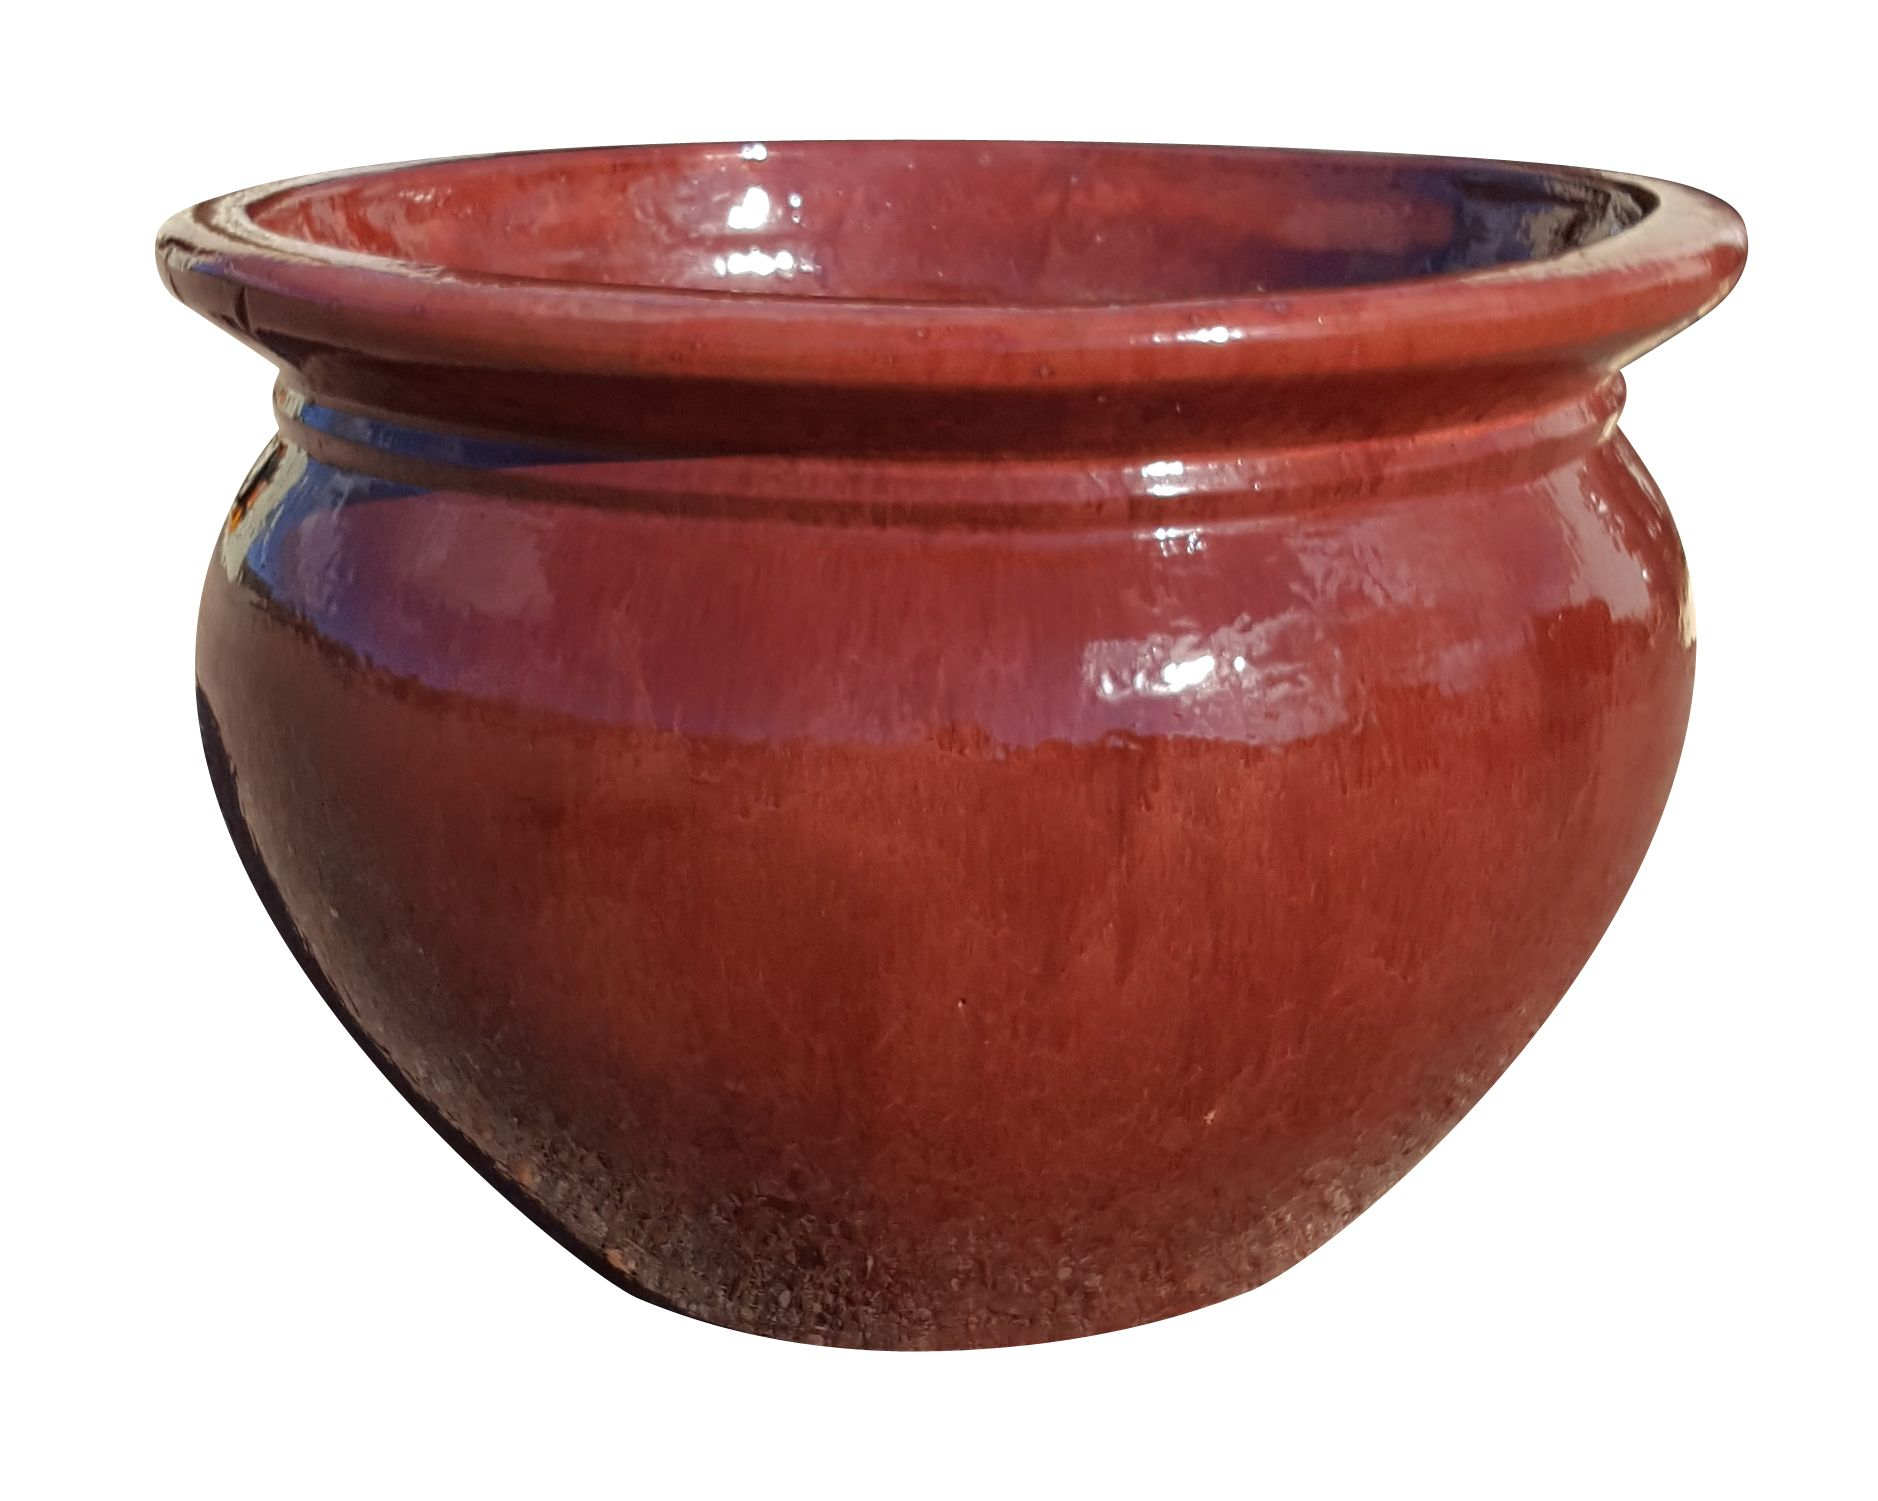 A fat belly pot with a flared